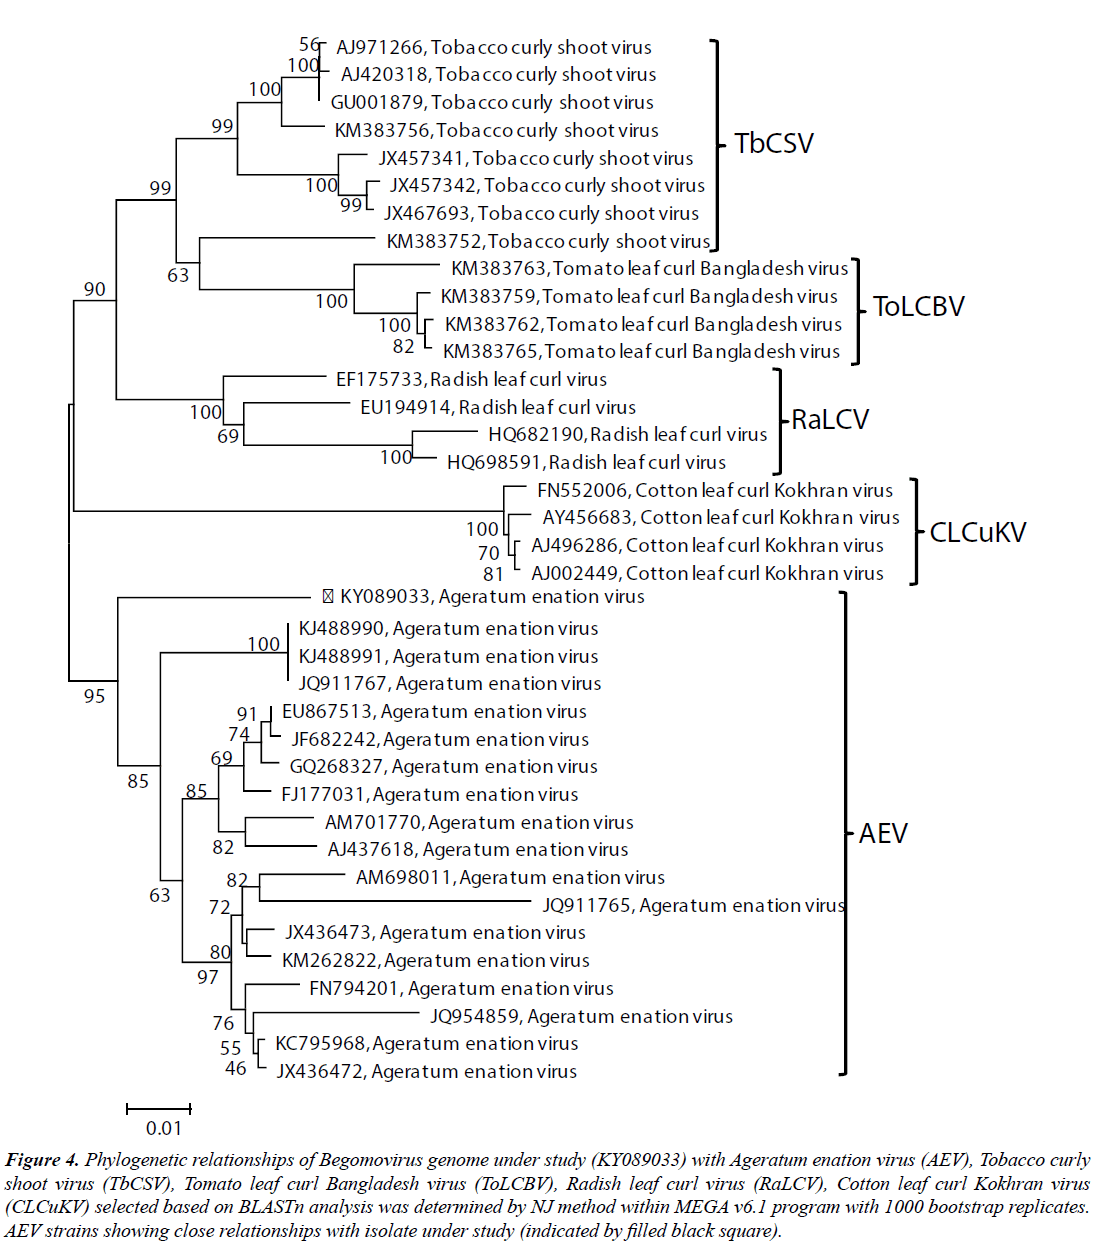 virology-research-Phylogenetic-relationships